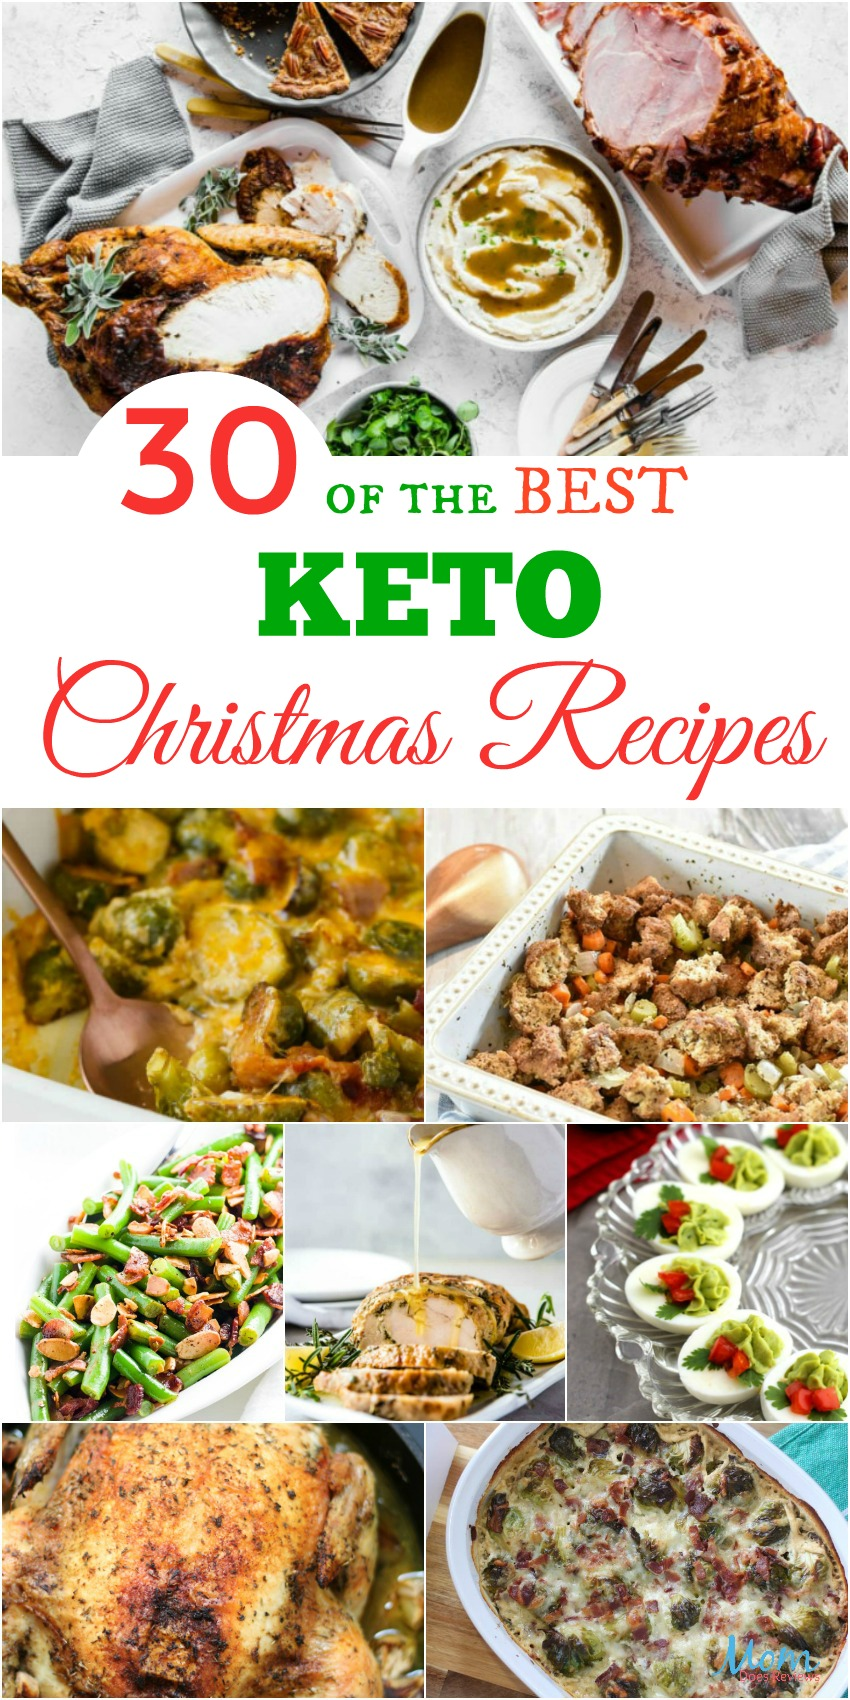 30 of the Best Keto Christmas #Recipes Guaranteed to Please #KETO #foodie #christmas